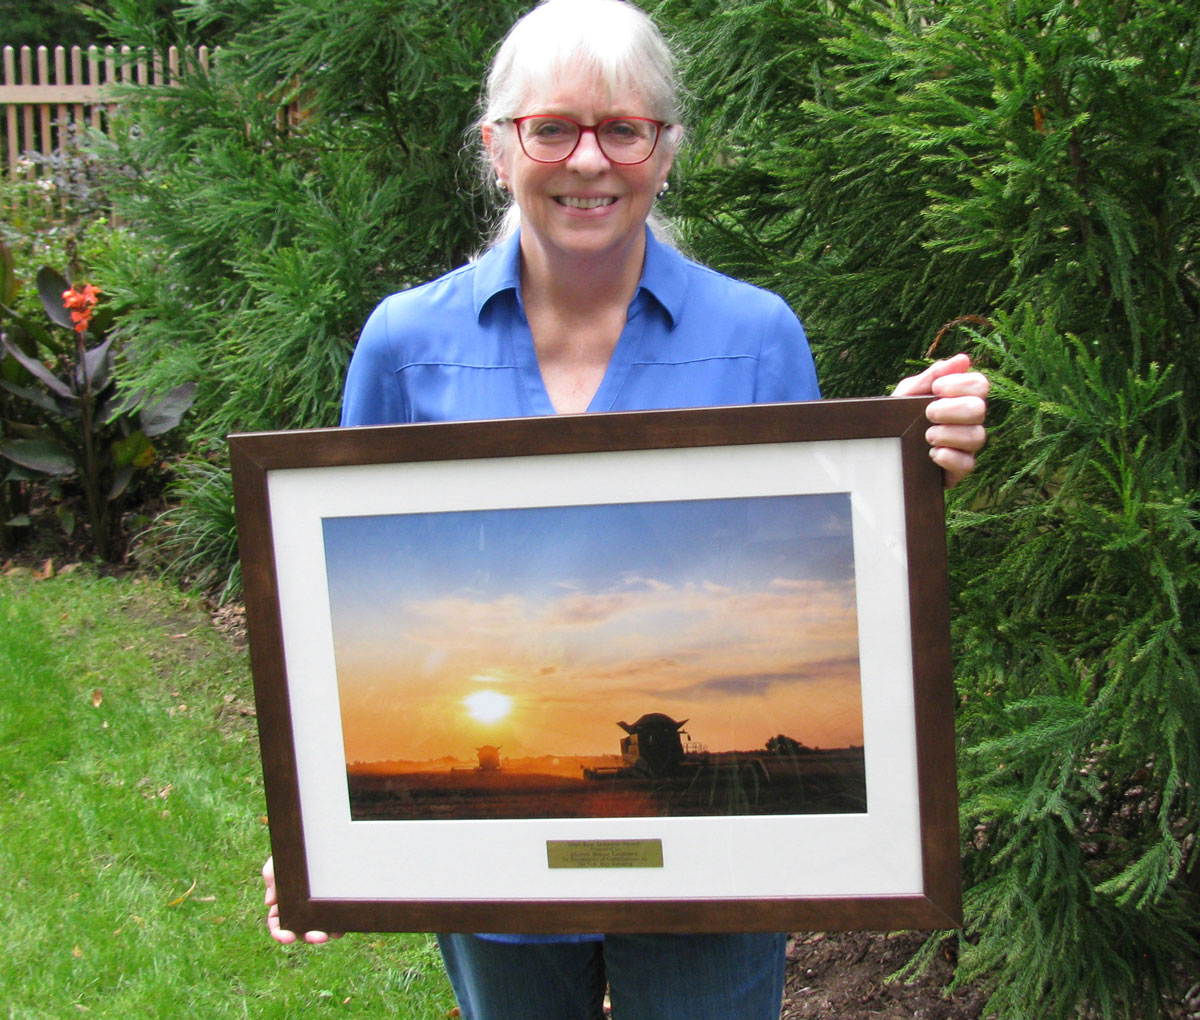 Sharon Bomer Lauritsen (older white woman with white hair and red-rimmed glasses) holds framed photo of combine in rice field